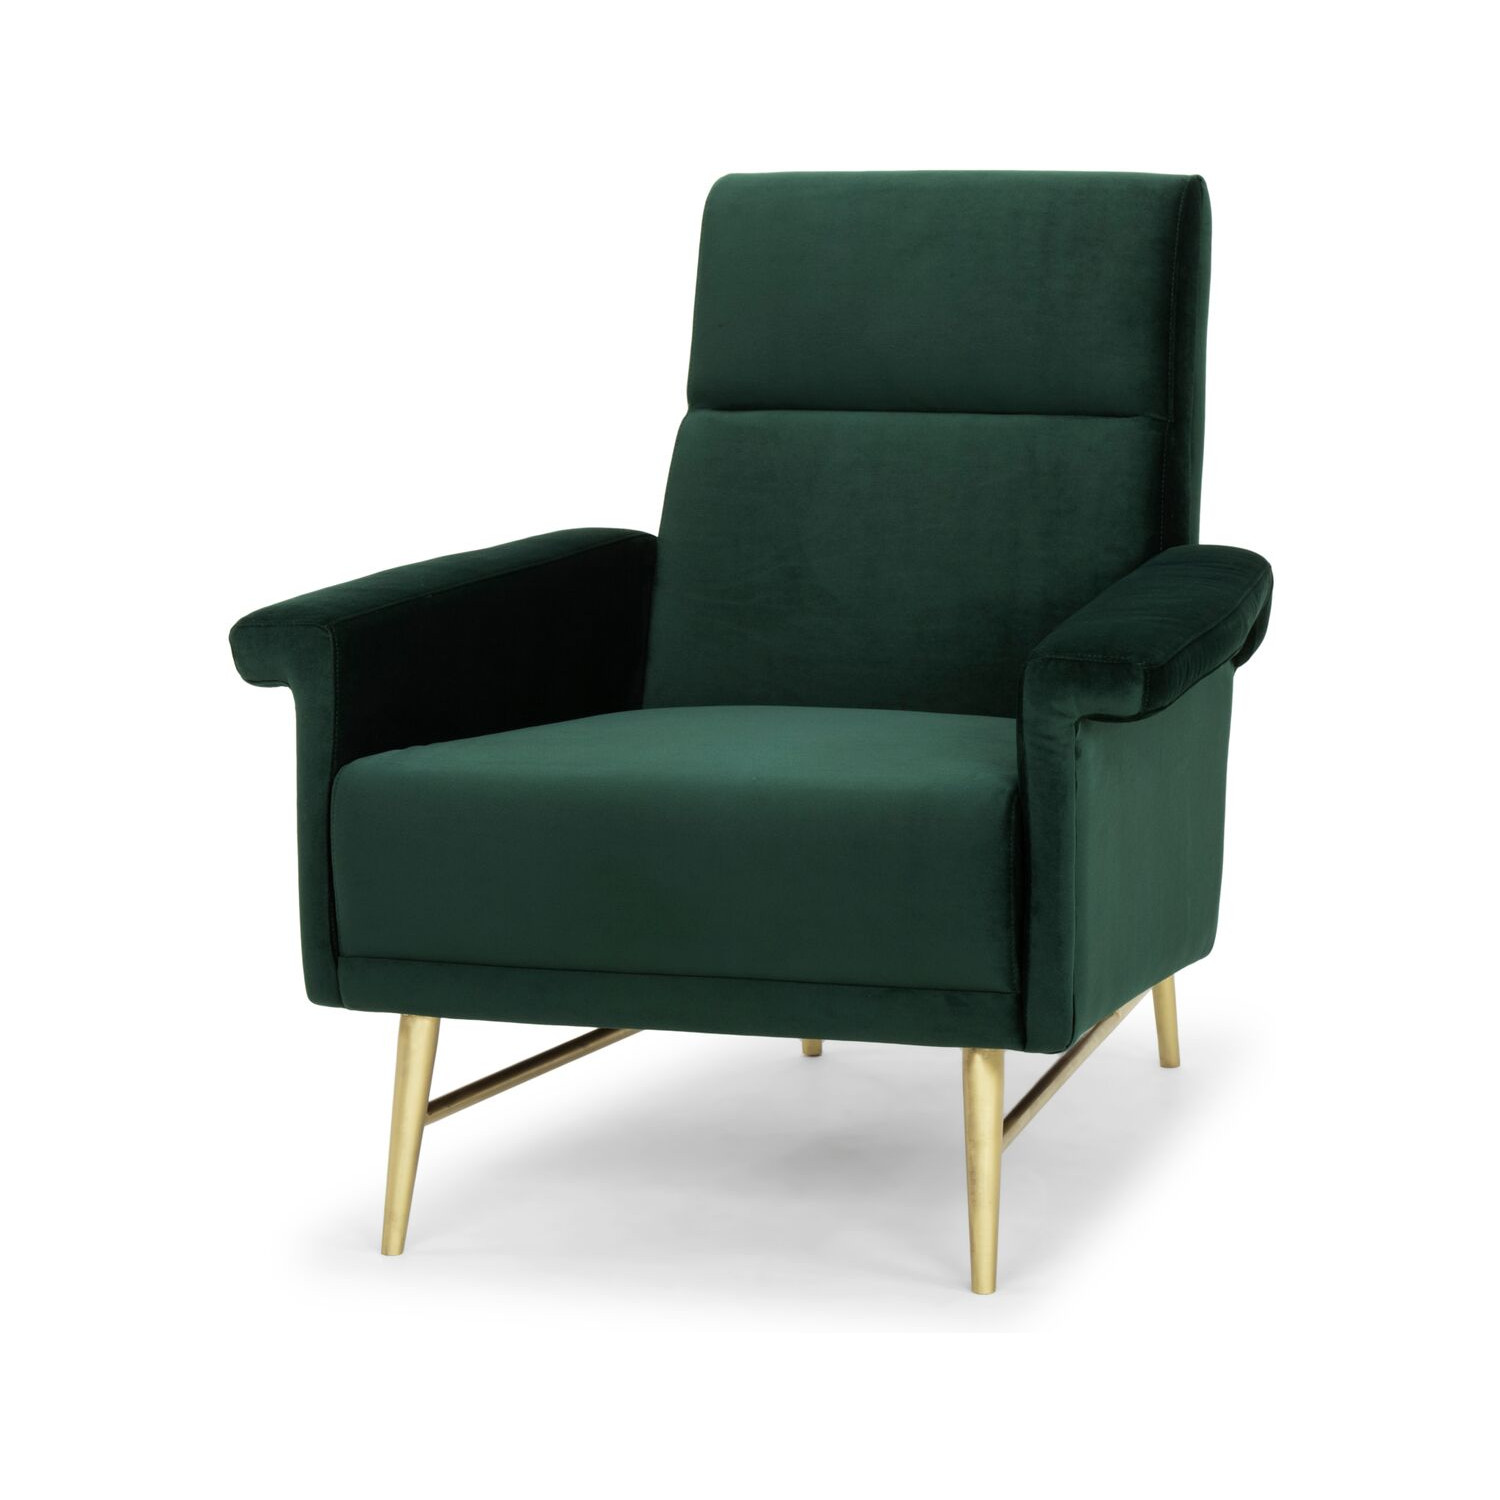 Emerald Green Accent Chair Mathise Accent Chair In Emerald Green Fabric On Gold Steel By Nuevo Modern Furniture